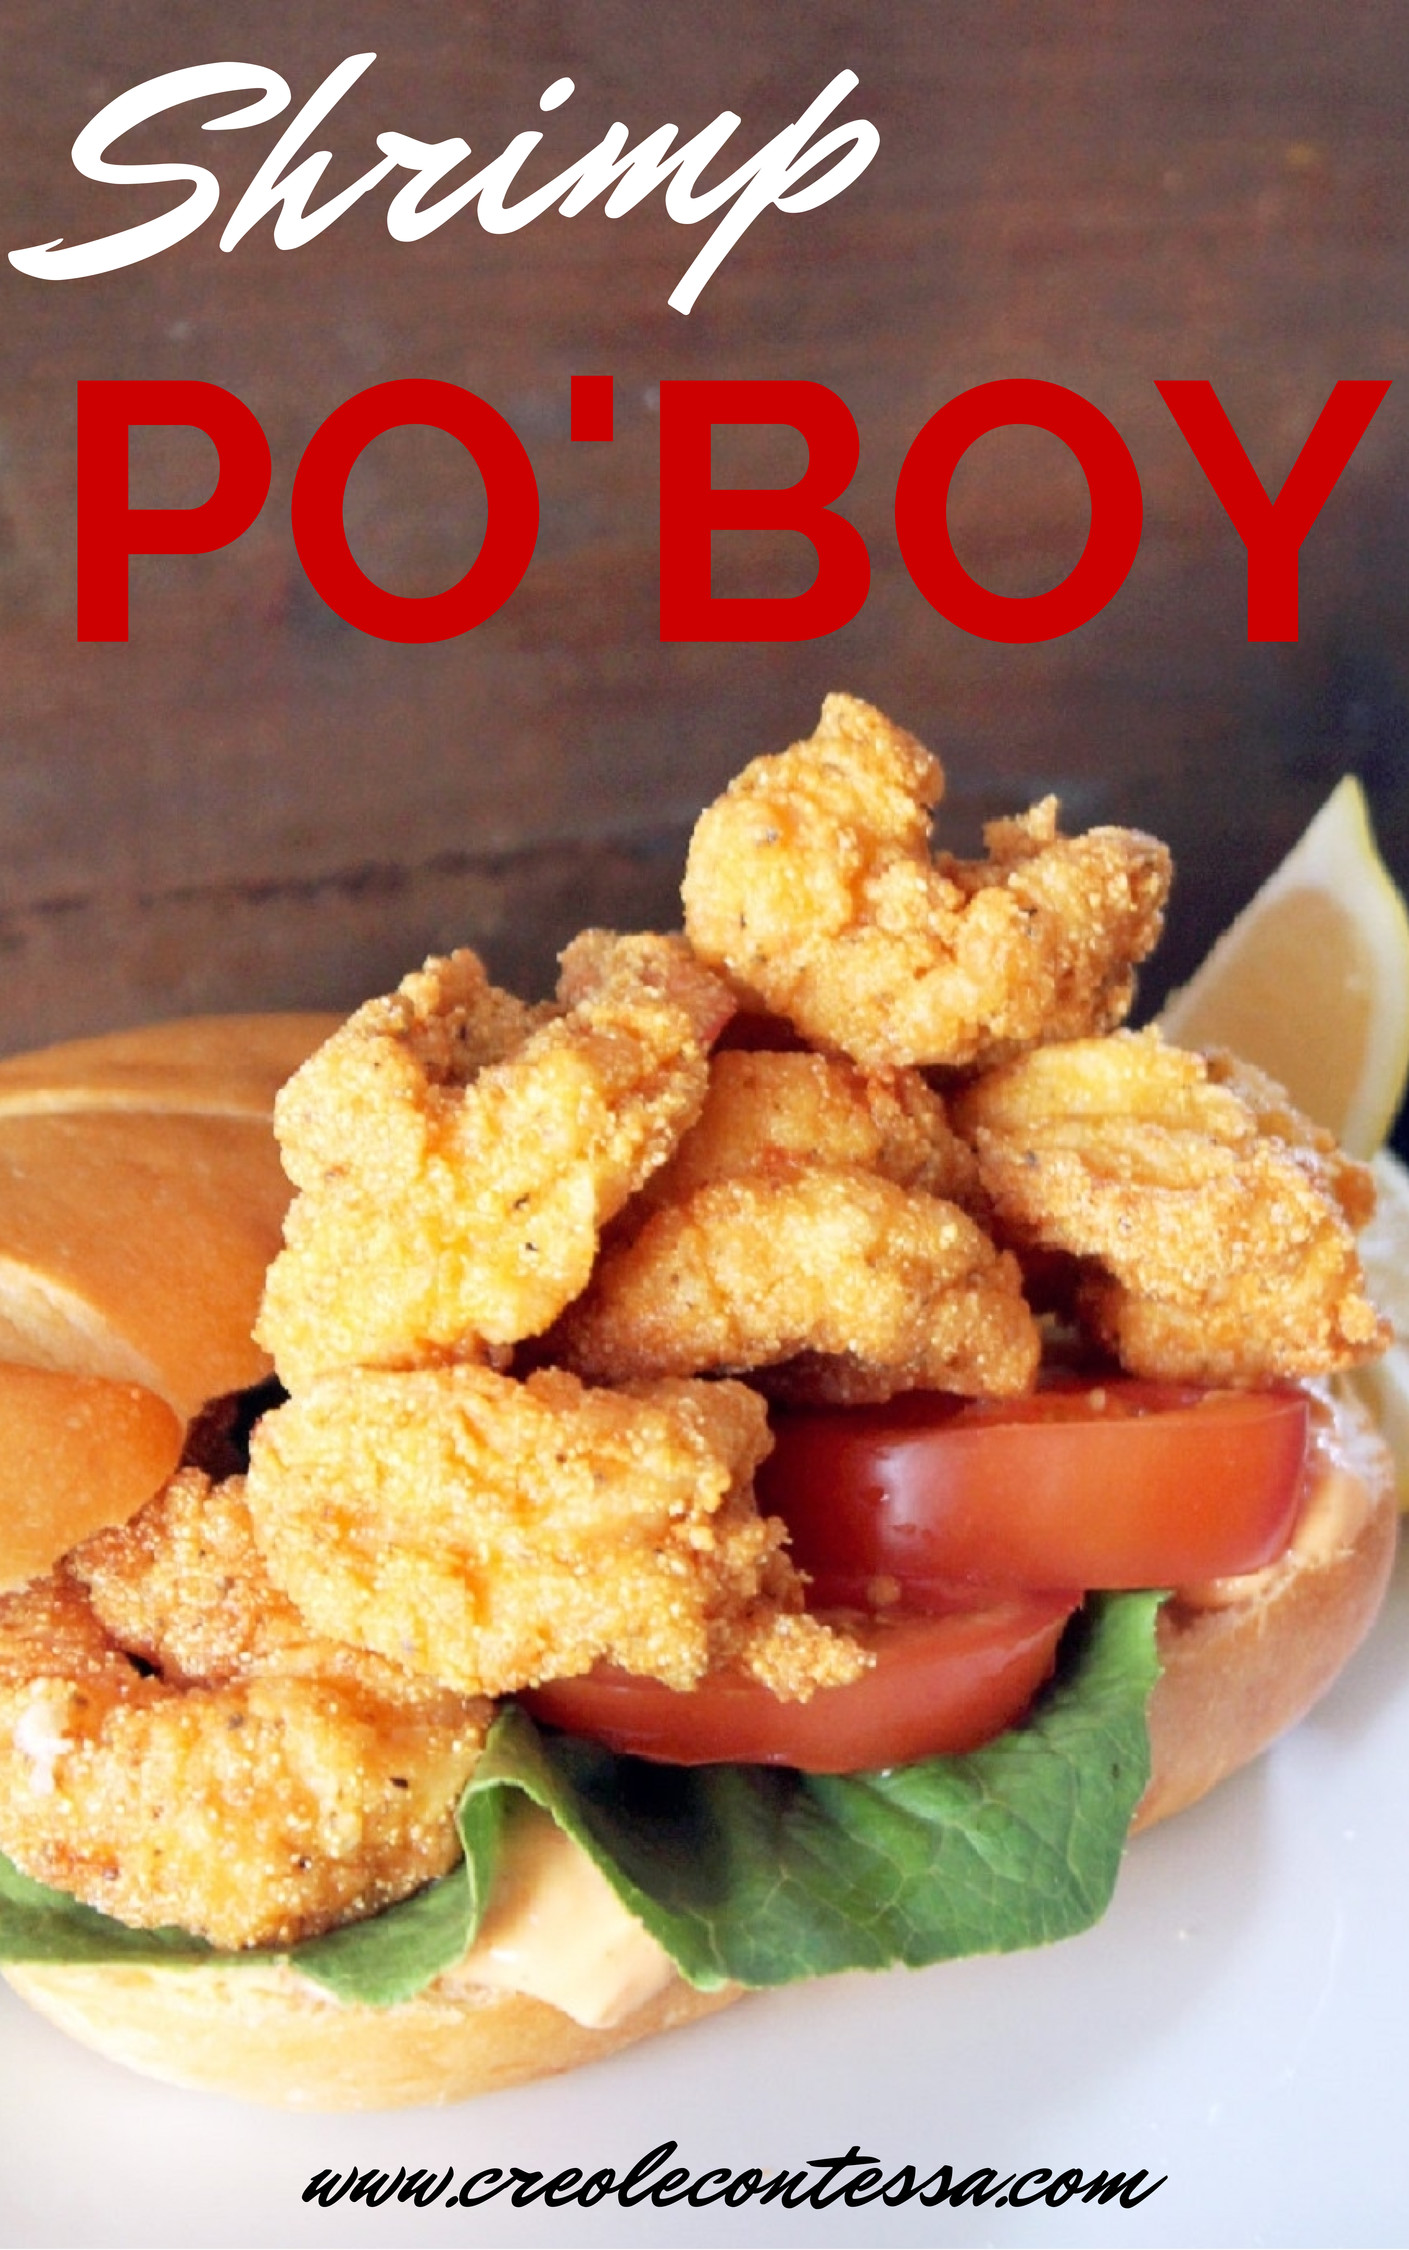 Shrimp Po Boy-Creole Contessa